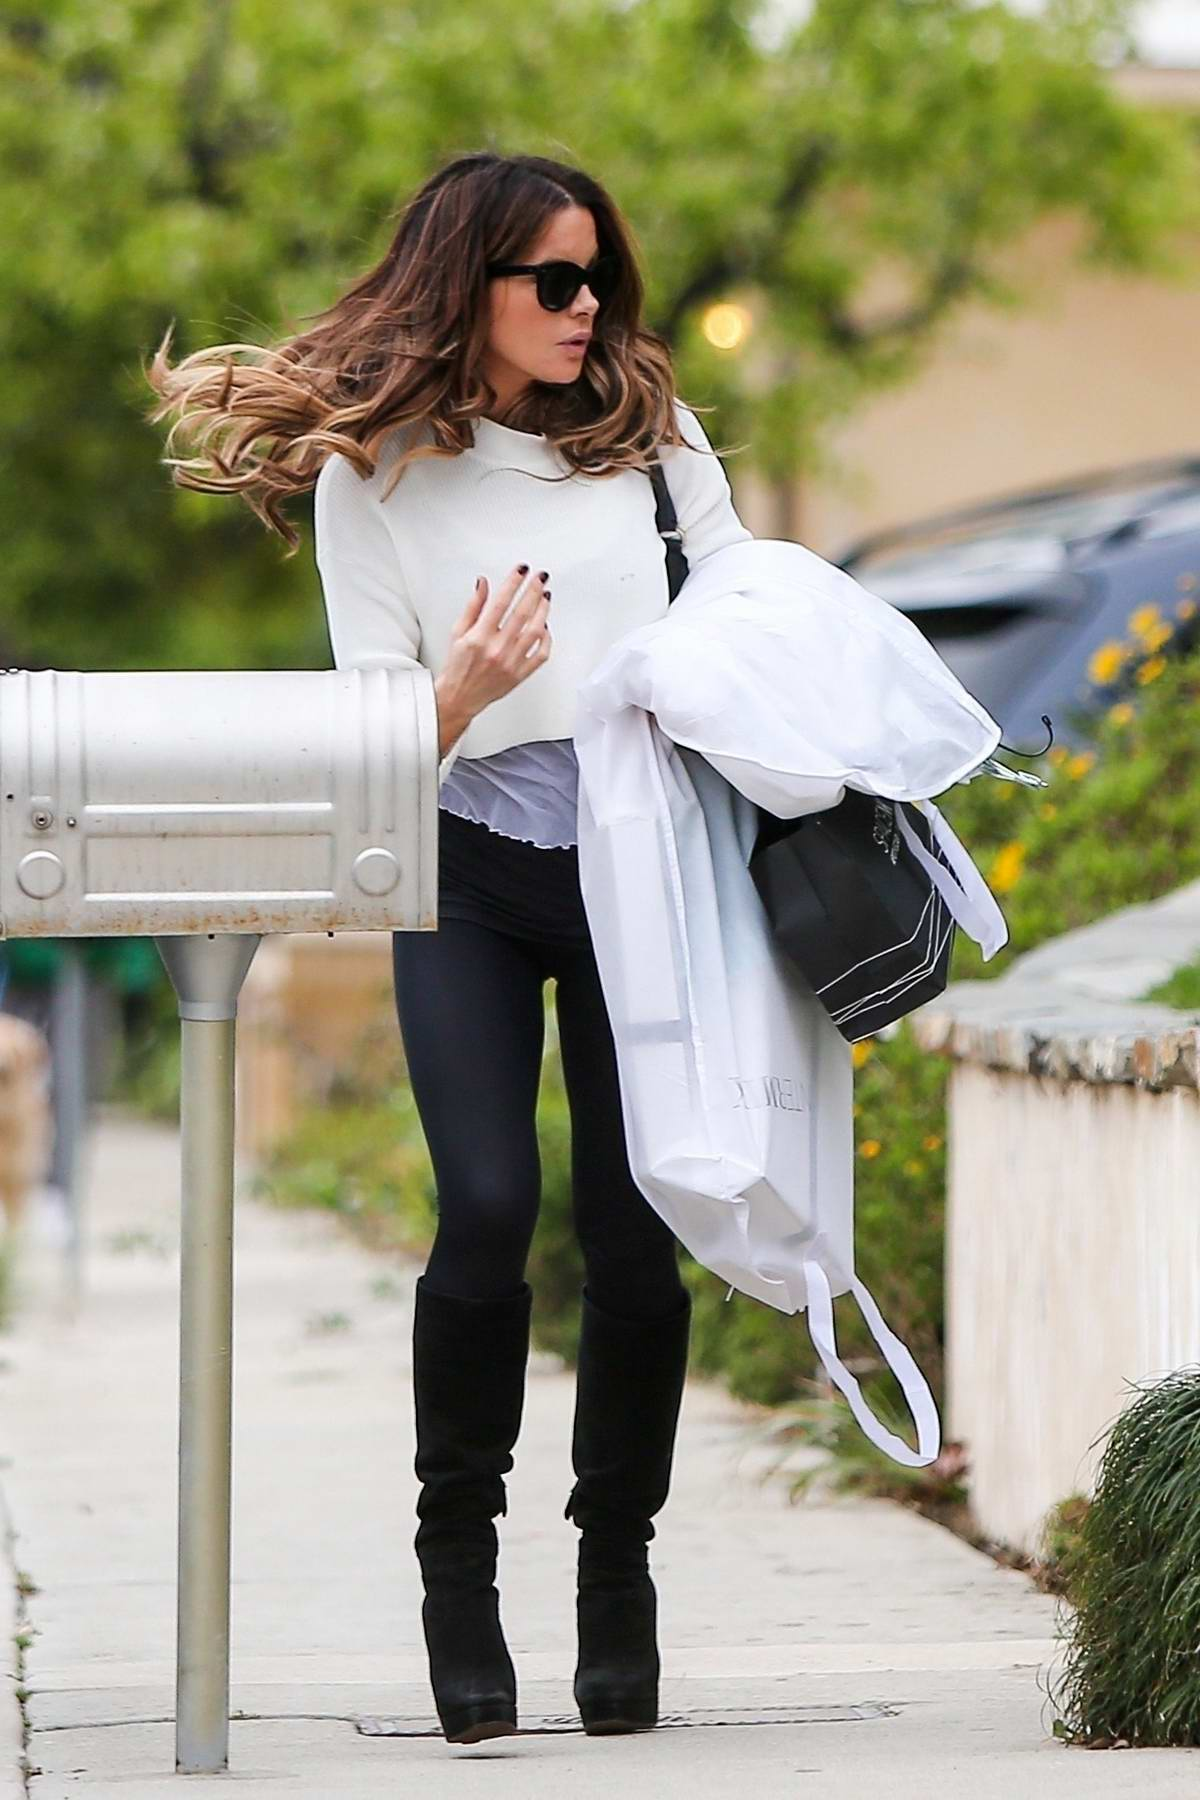 Kate Beckinsale looking amazing after shopping in Santa Monica, California